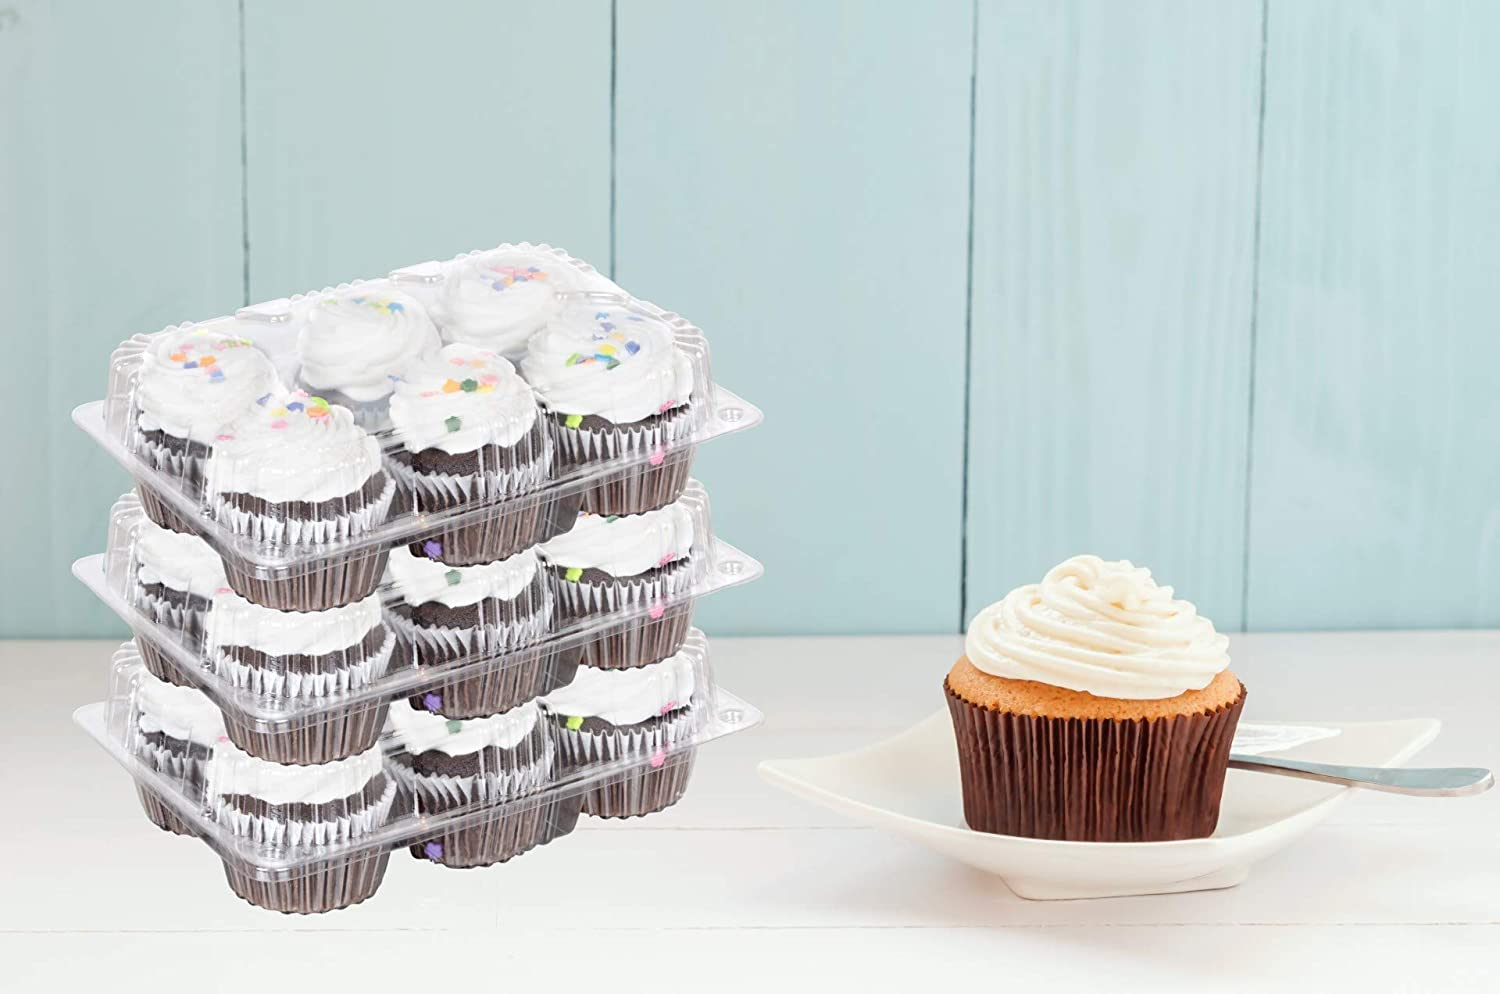 Disposable Cupcake Tray Plastic Clamshell Design Container with Lid Holds 6 Cup Cakes or Muffins (20 Pack)